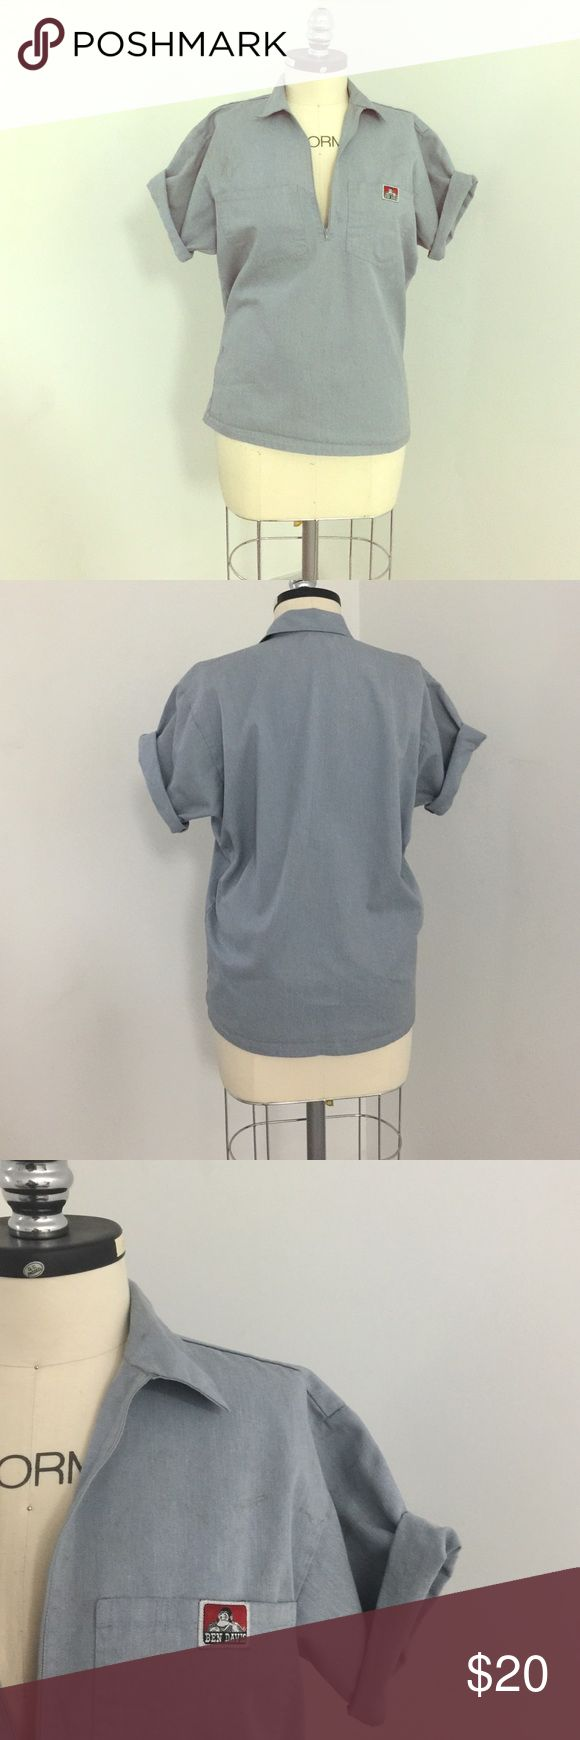 Ben Davis work shirt Light wash denim shirt. Zipper shows just the right amount of cleavage, or you can zip up to cover more. Looks great with skinny jeans and heels! Perfect for girls who are bigger on top! (Men's shirt) has some stains because it was an actual work shirt but I liked it 💁🏼 Ben Davis Jeans